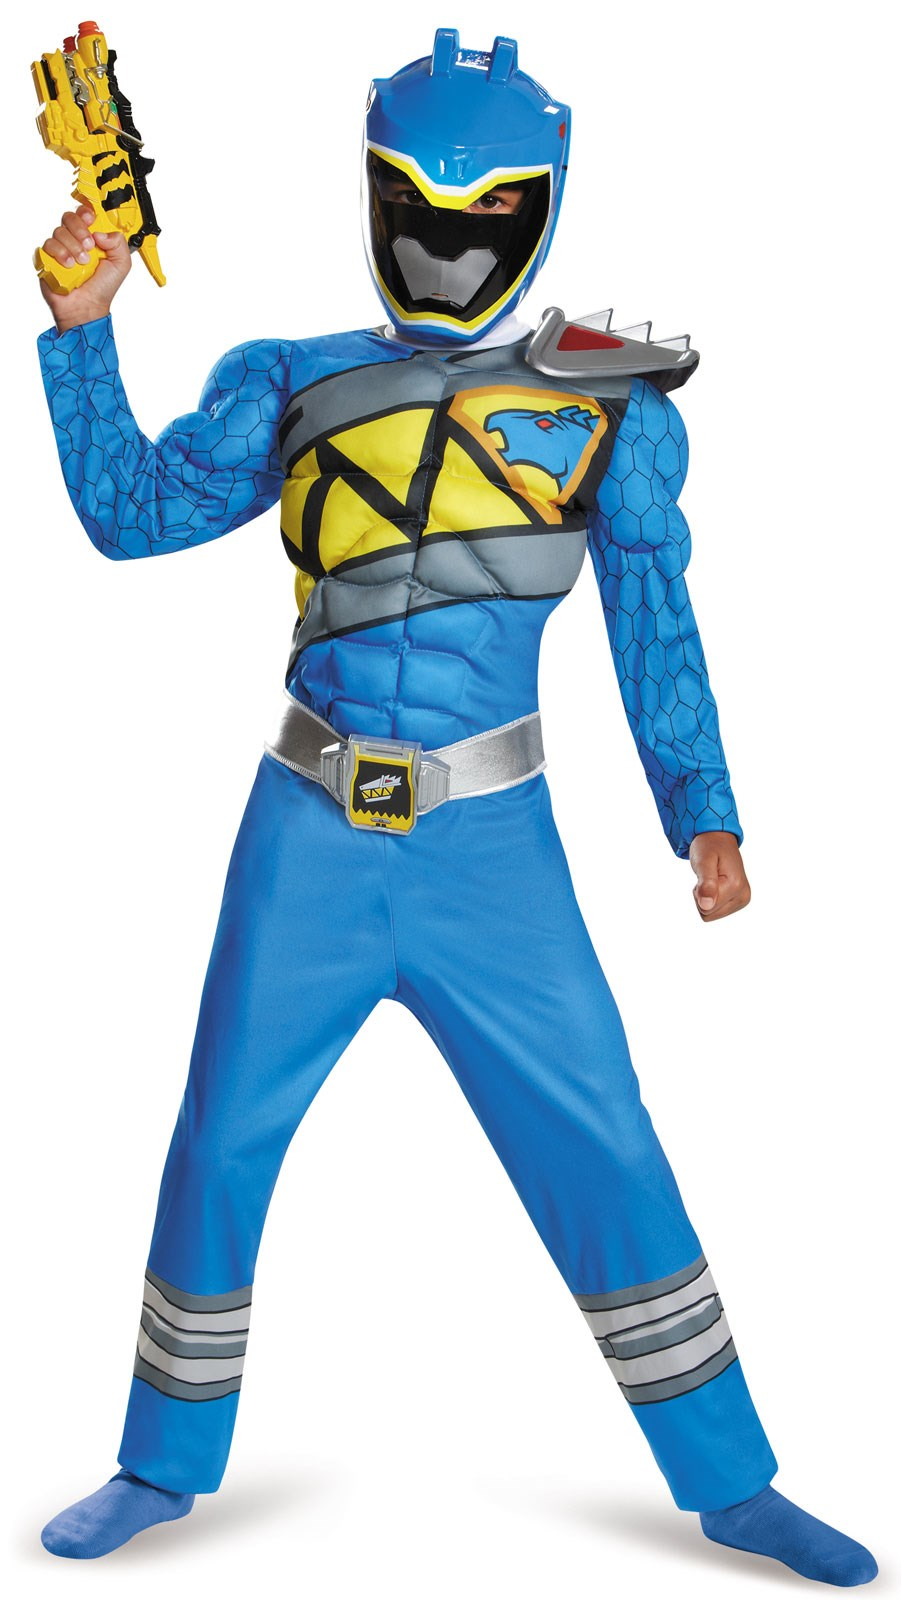 Power Rangers Dino Charge: Boys Blue Ranger Muscle Costume